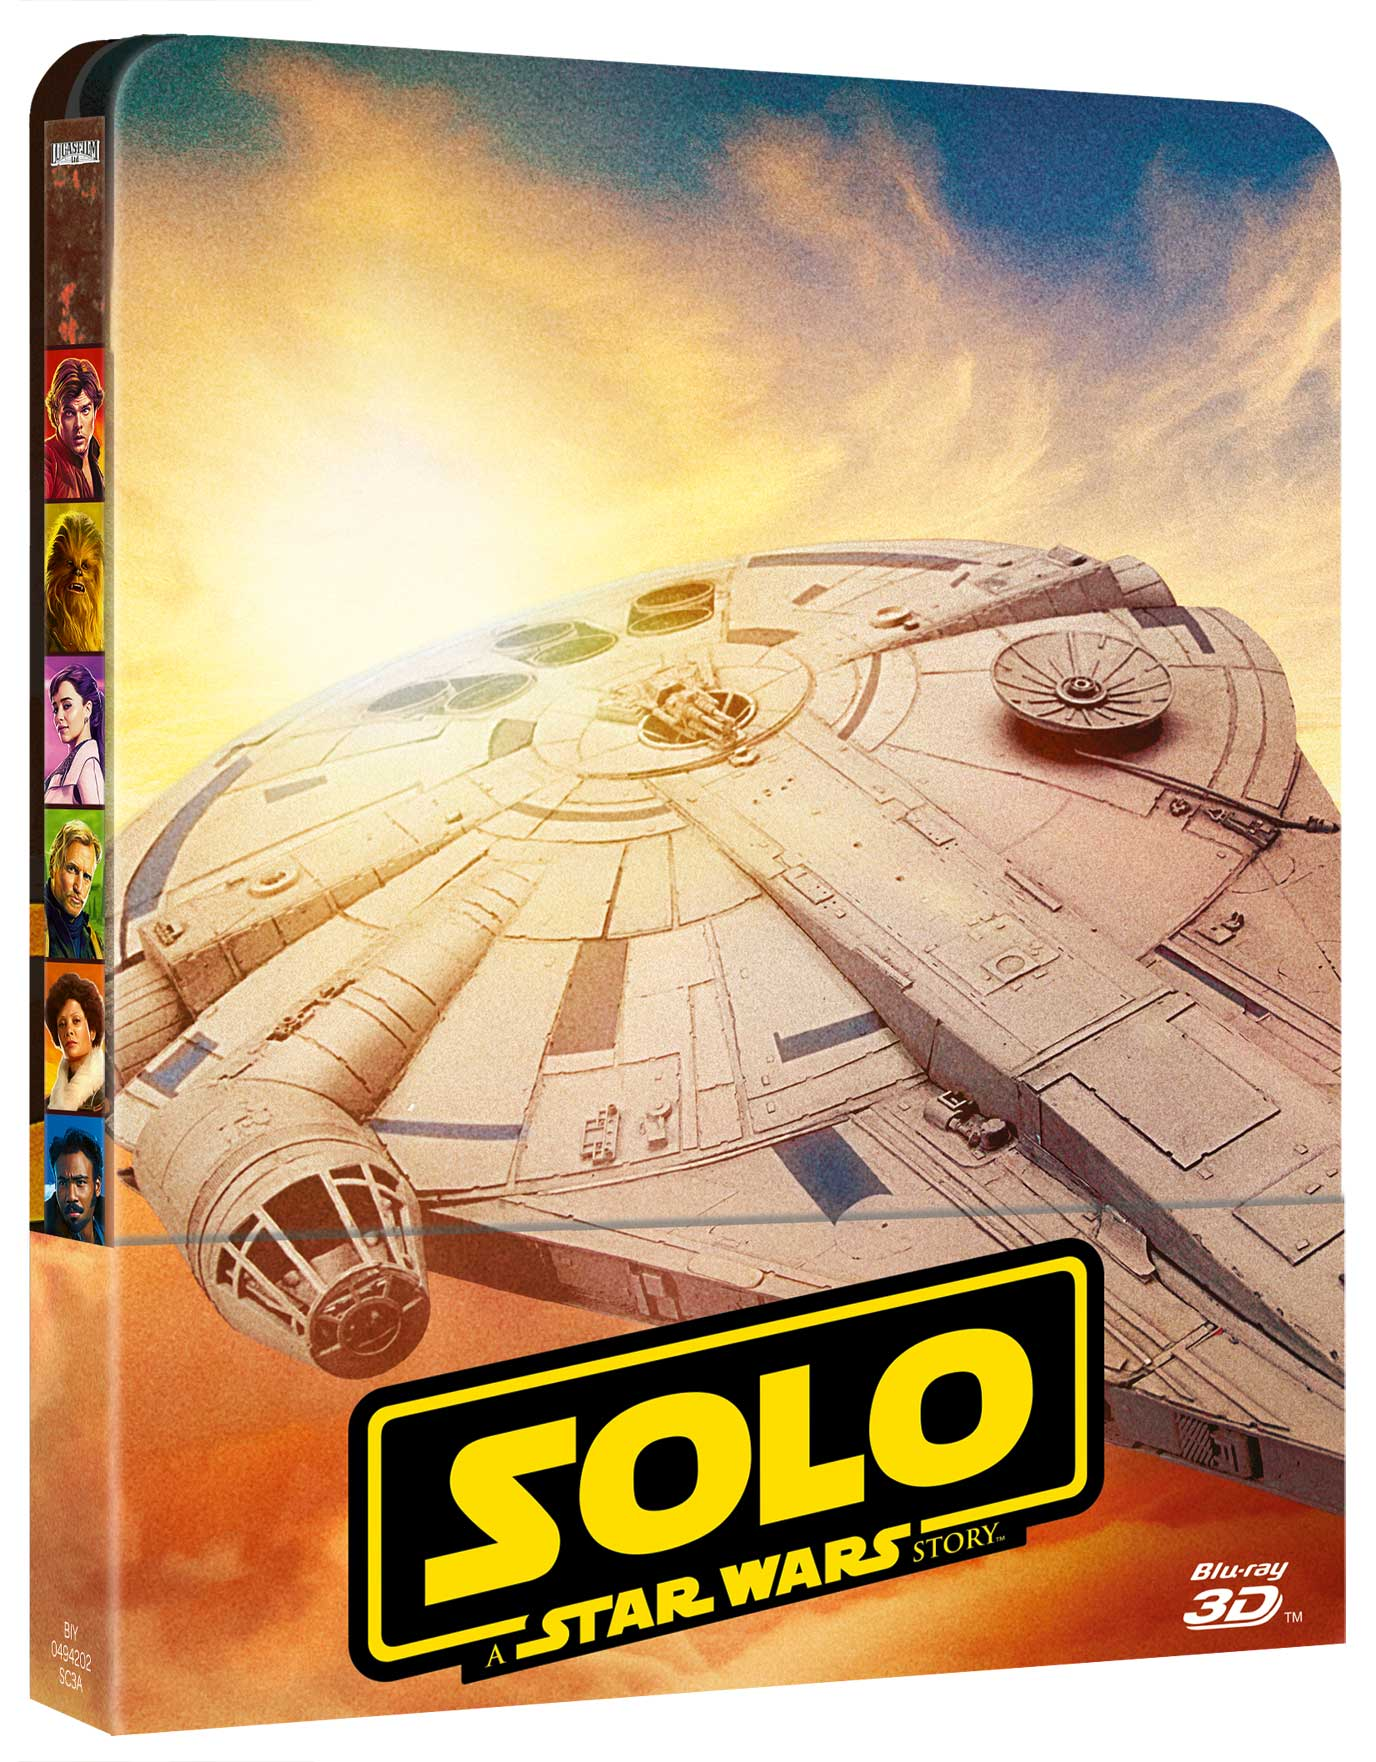 STAR WARS - SOLO: A STAR WARS STORY (3D) (BLU-RAY 3D+2 BLU-RAY)